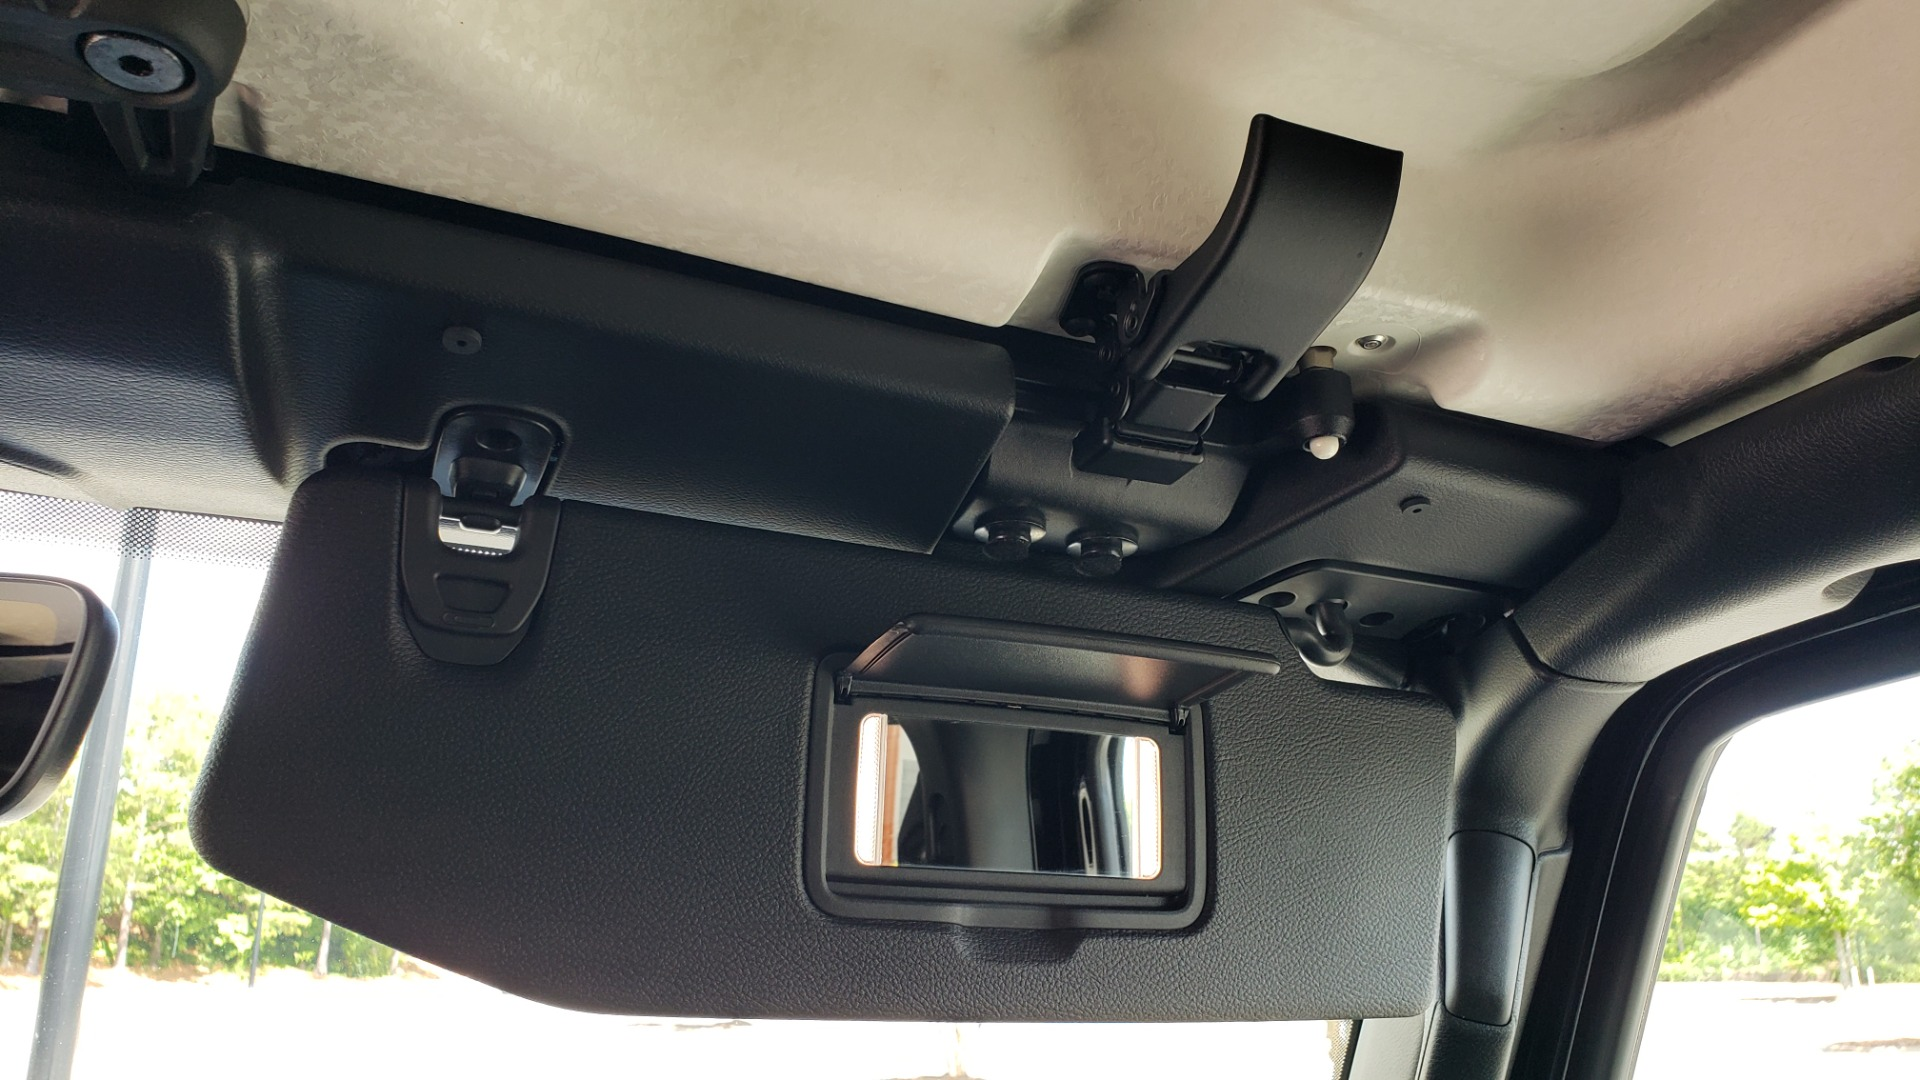 Used 2018 Jeep WRANGLER UNLIMITED SAHARA / 3.6L V6 / 6-SPD MAN / ALPINE / NAV / HTD STS / REARVIEW for sale $43,999 at Formula Imports in Charlotte NC 28227 69